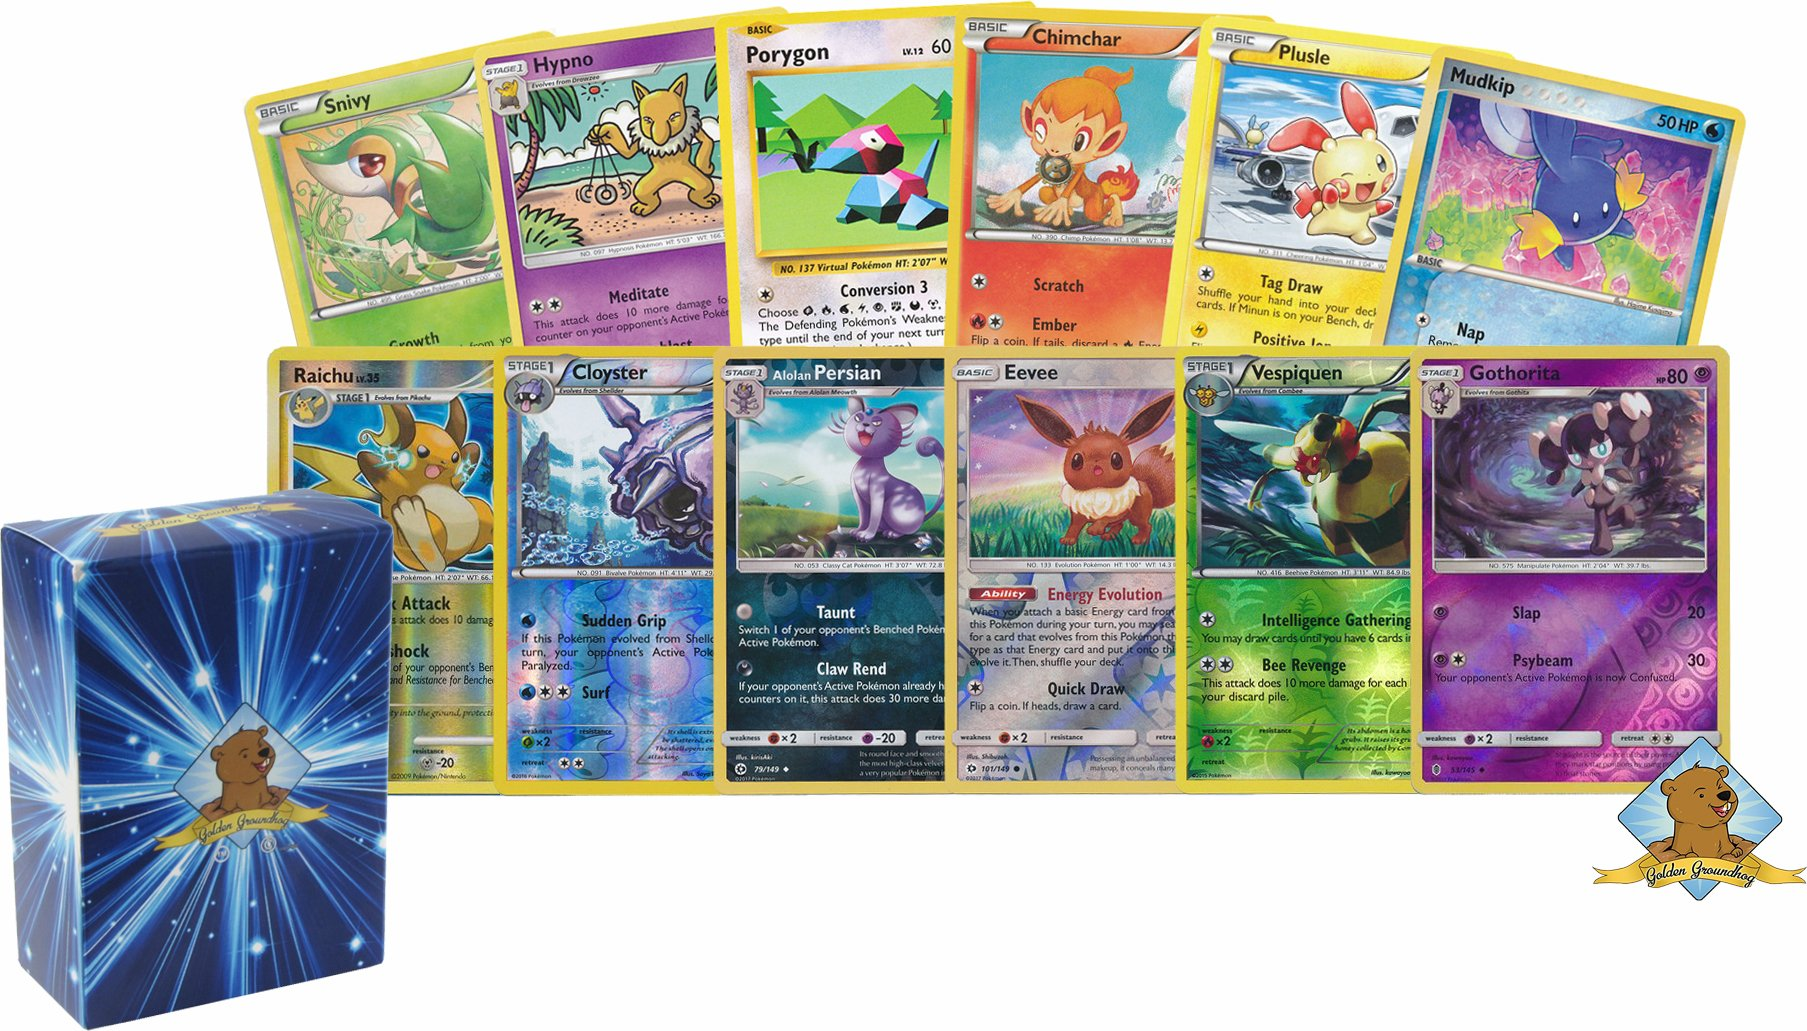 100 Assorted Pokemon Cards with 8 Reverse Foils! Includes Golden Groundhog Box!